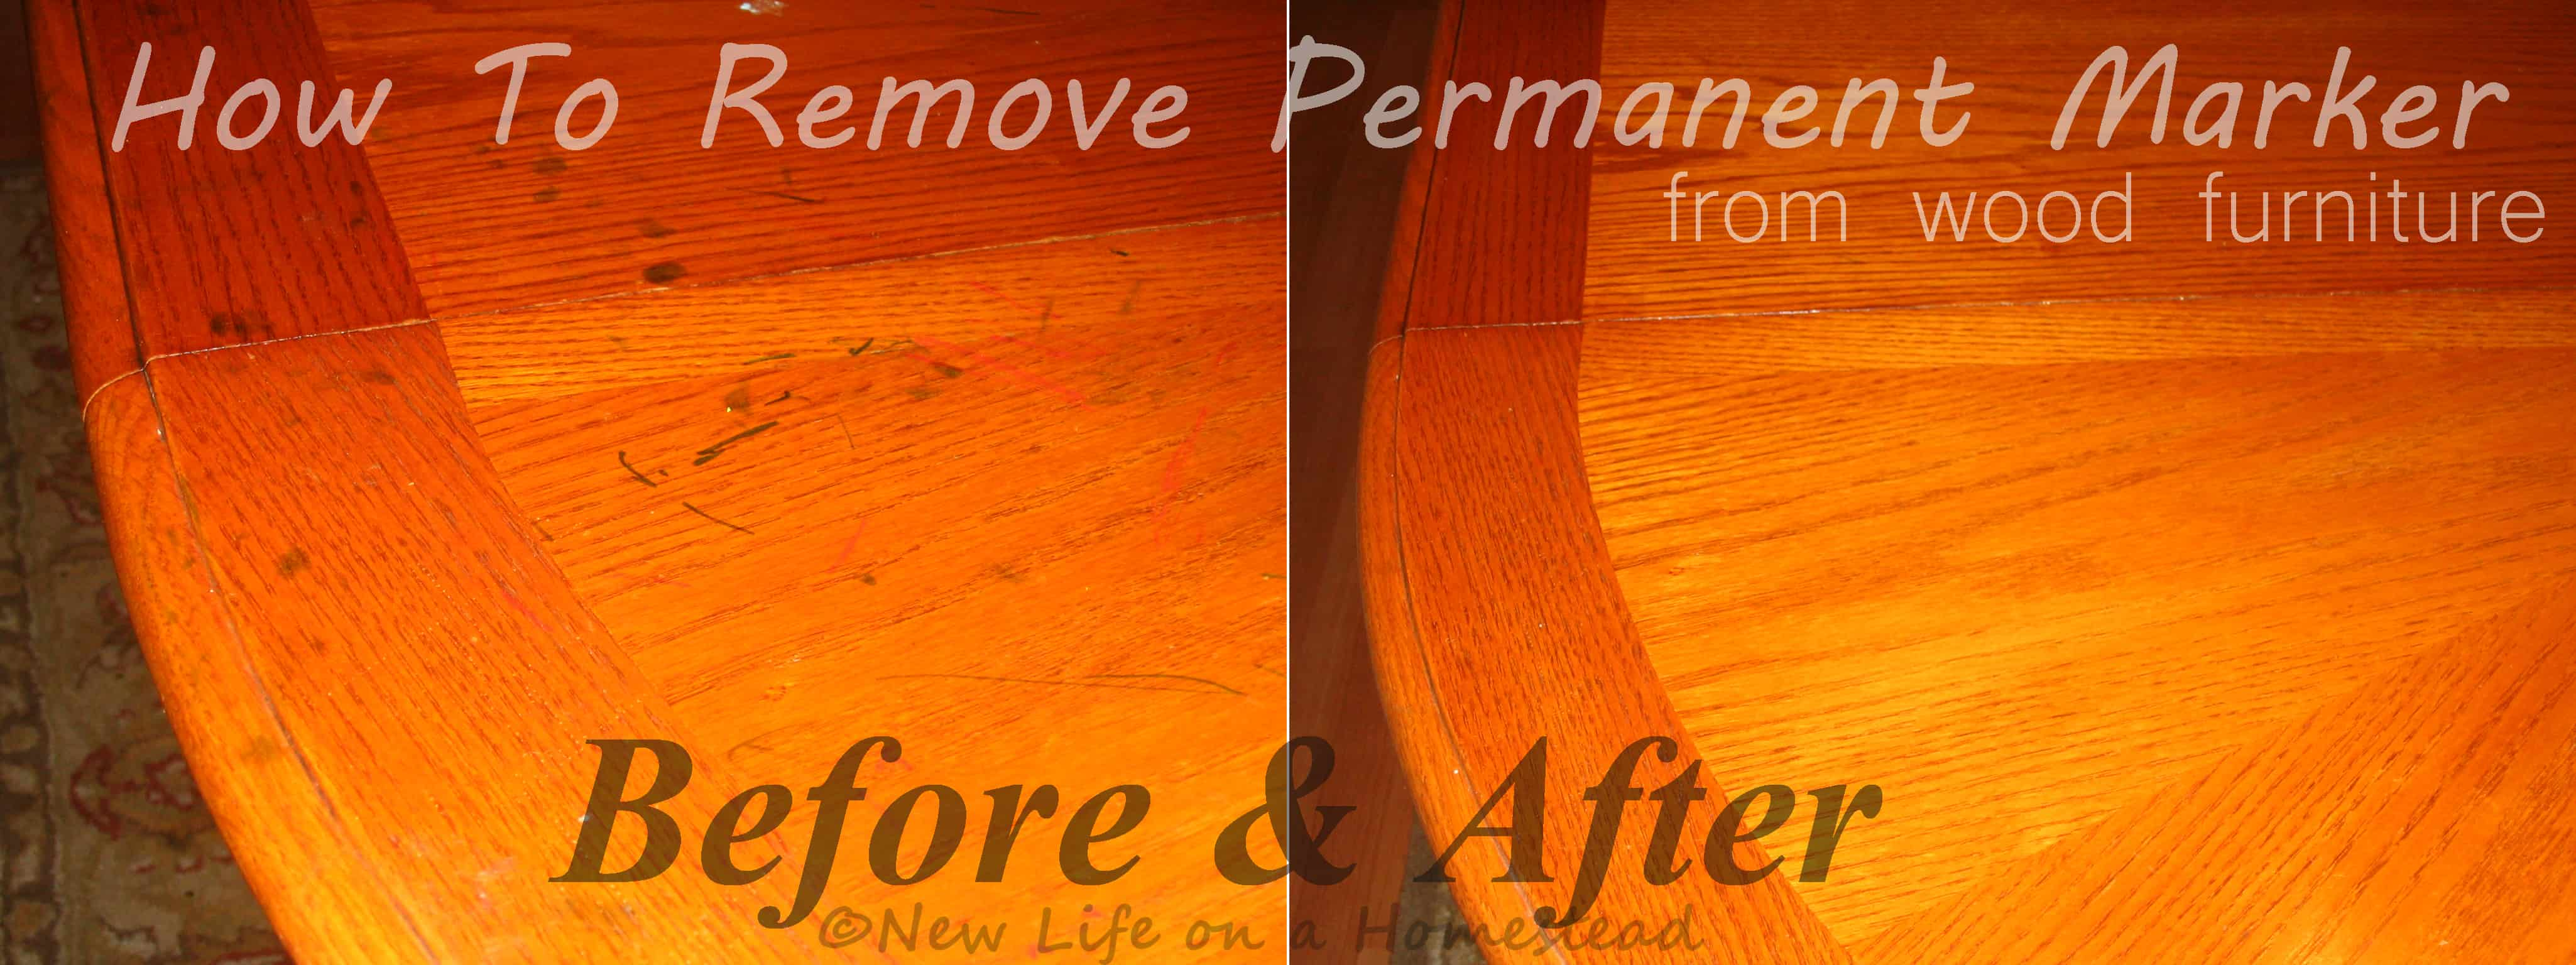 How To Remove Permanent Marker from Wood Furniture http://newlifeonahomestead.com